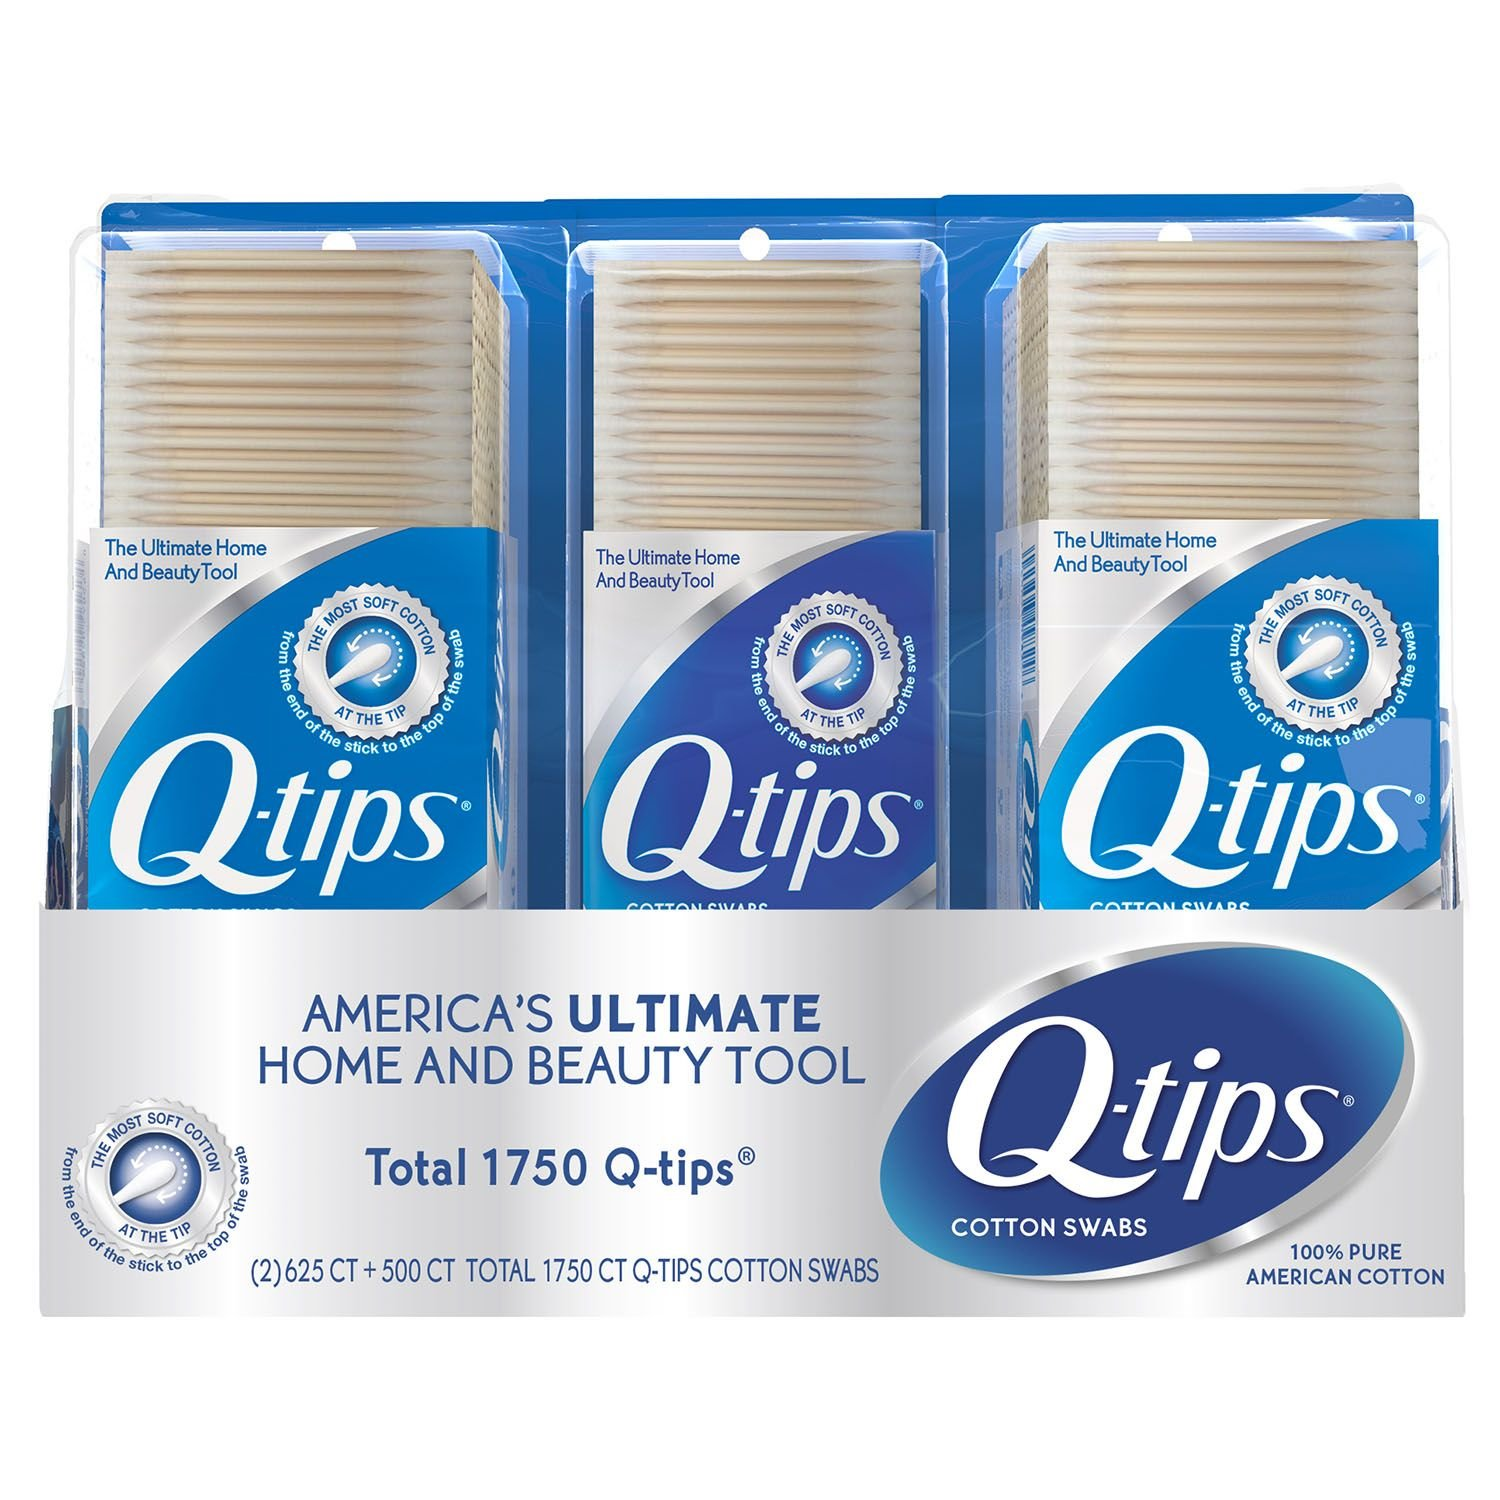 Q-tips Cotton Swabs Club (Pack of 6)